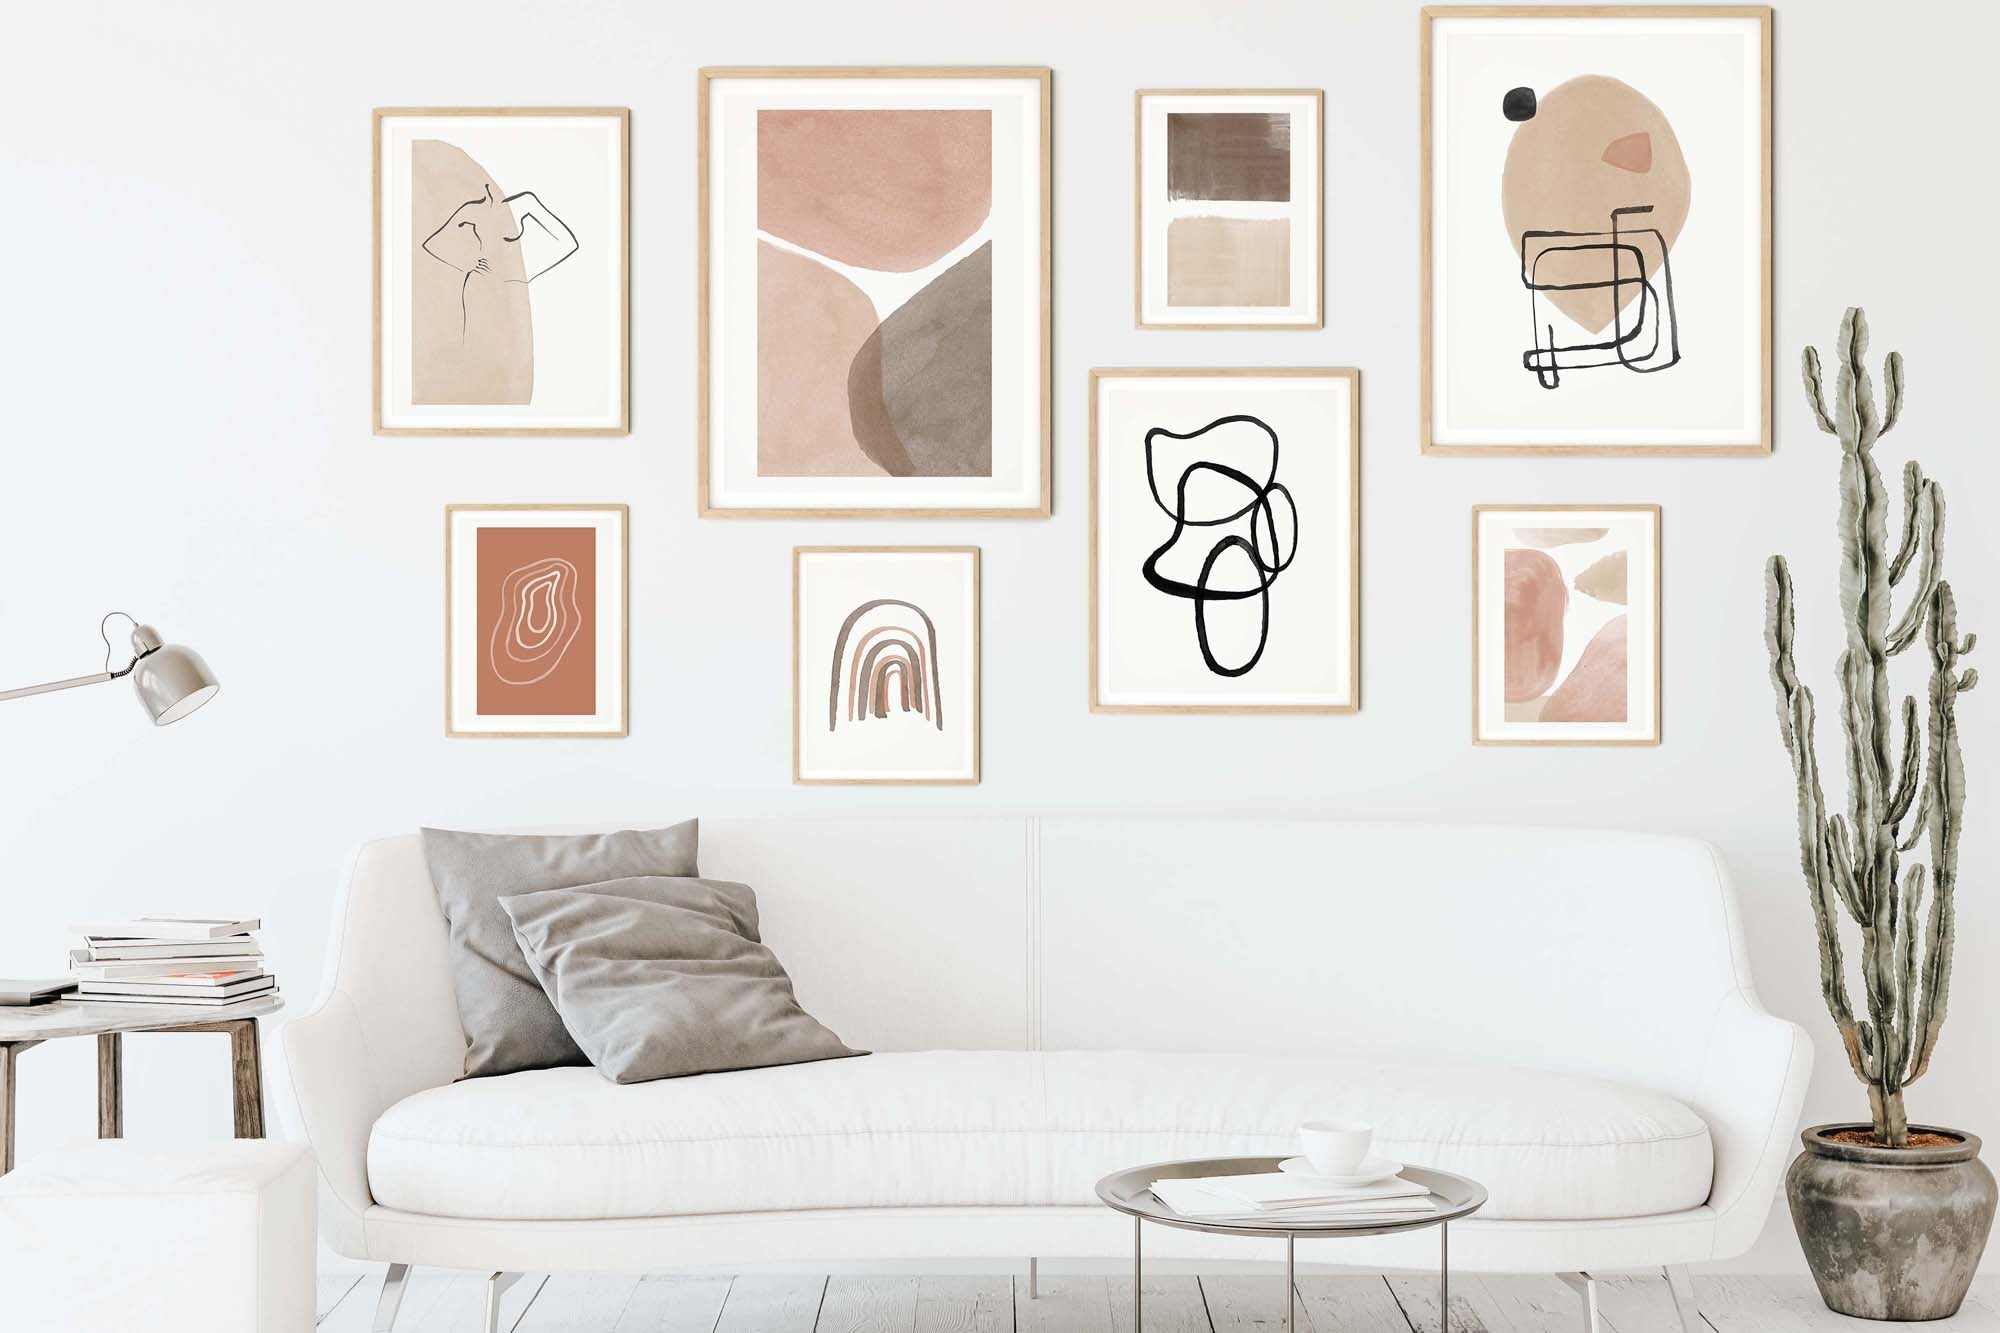 HOW TO CREATE A BOHO GALLERY WALL